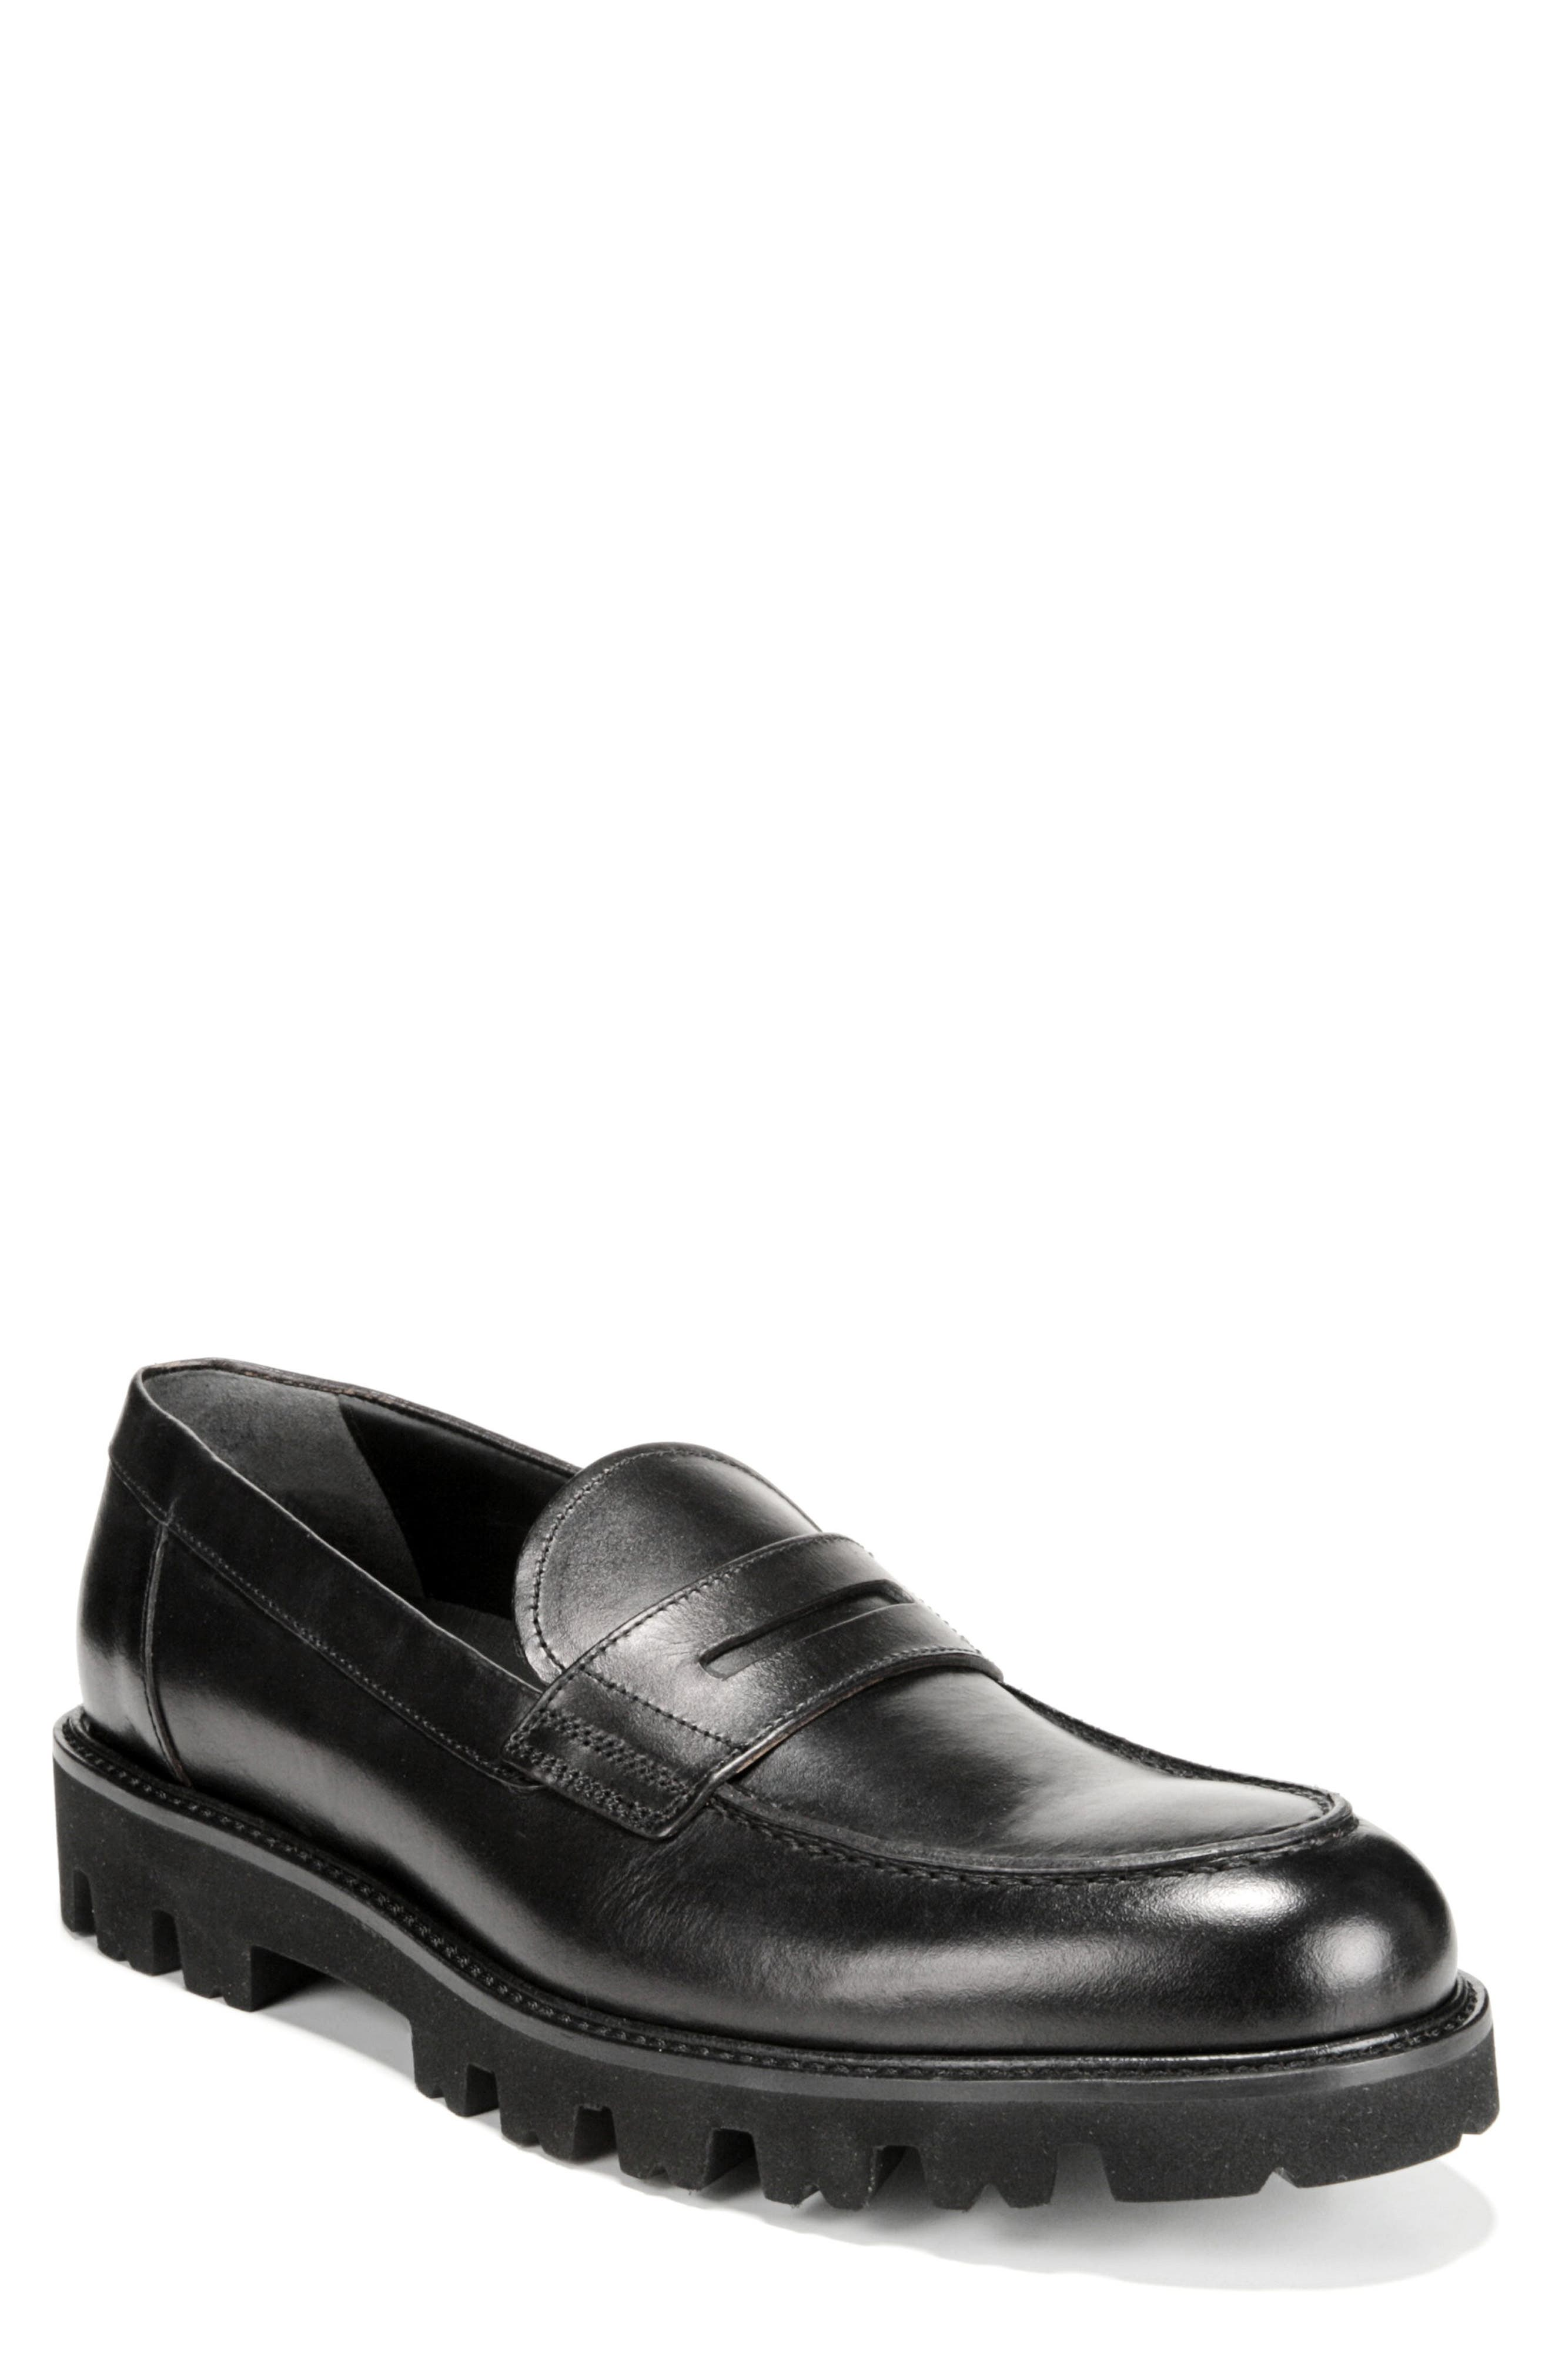 Comrade Loafer,                             Main thumbnail 1, color,                             BLACK